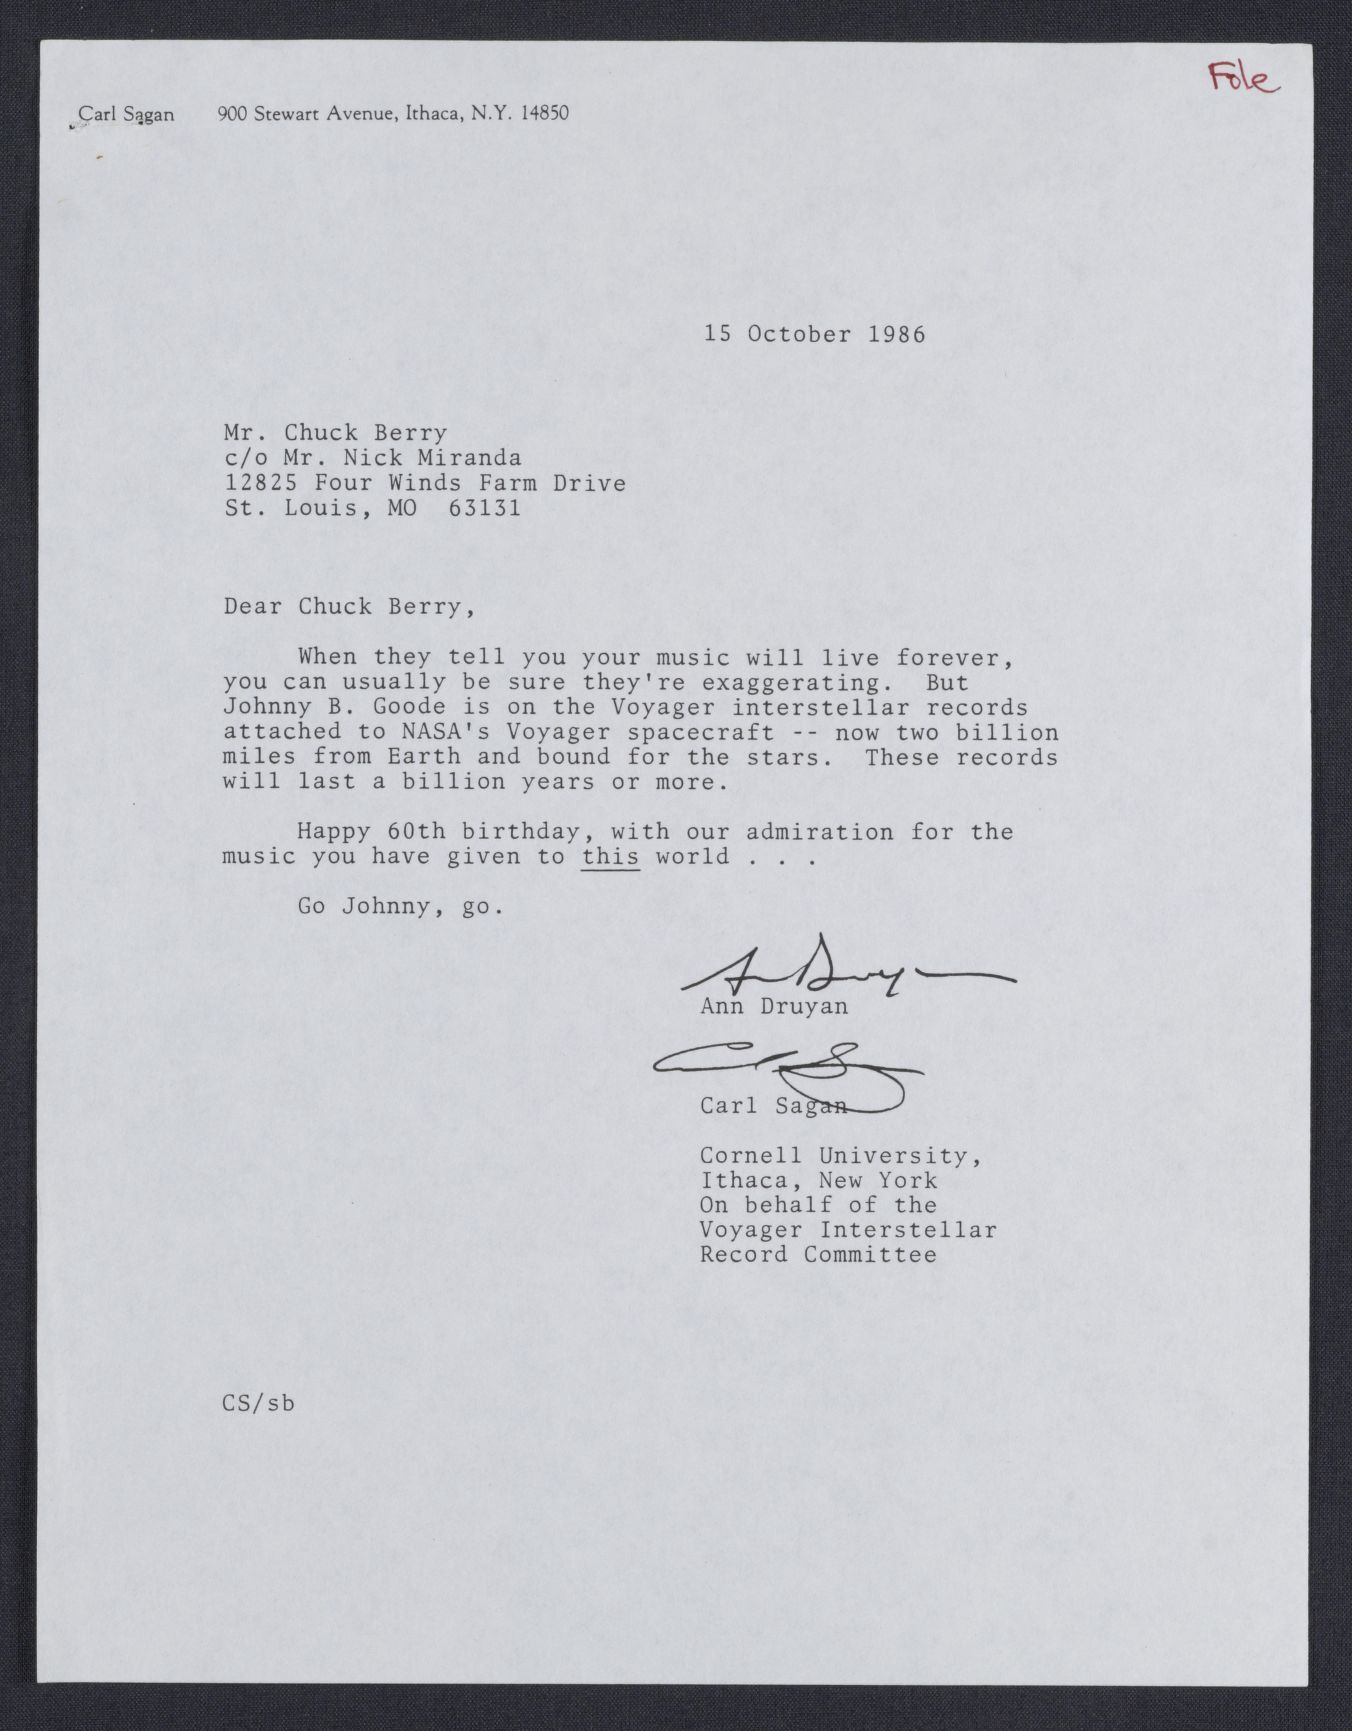 Letter To Chuck Berry From Ann Druyan And Carl Sagan